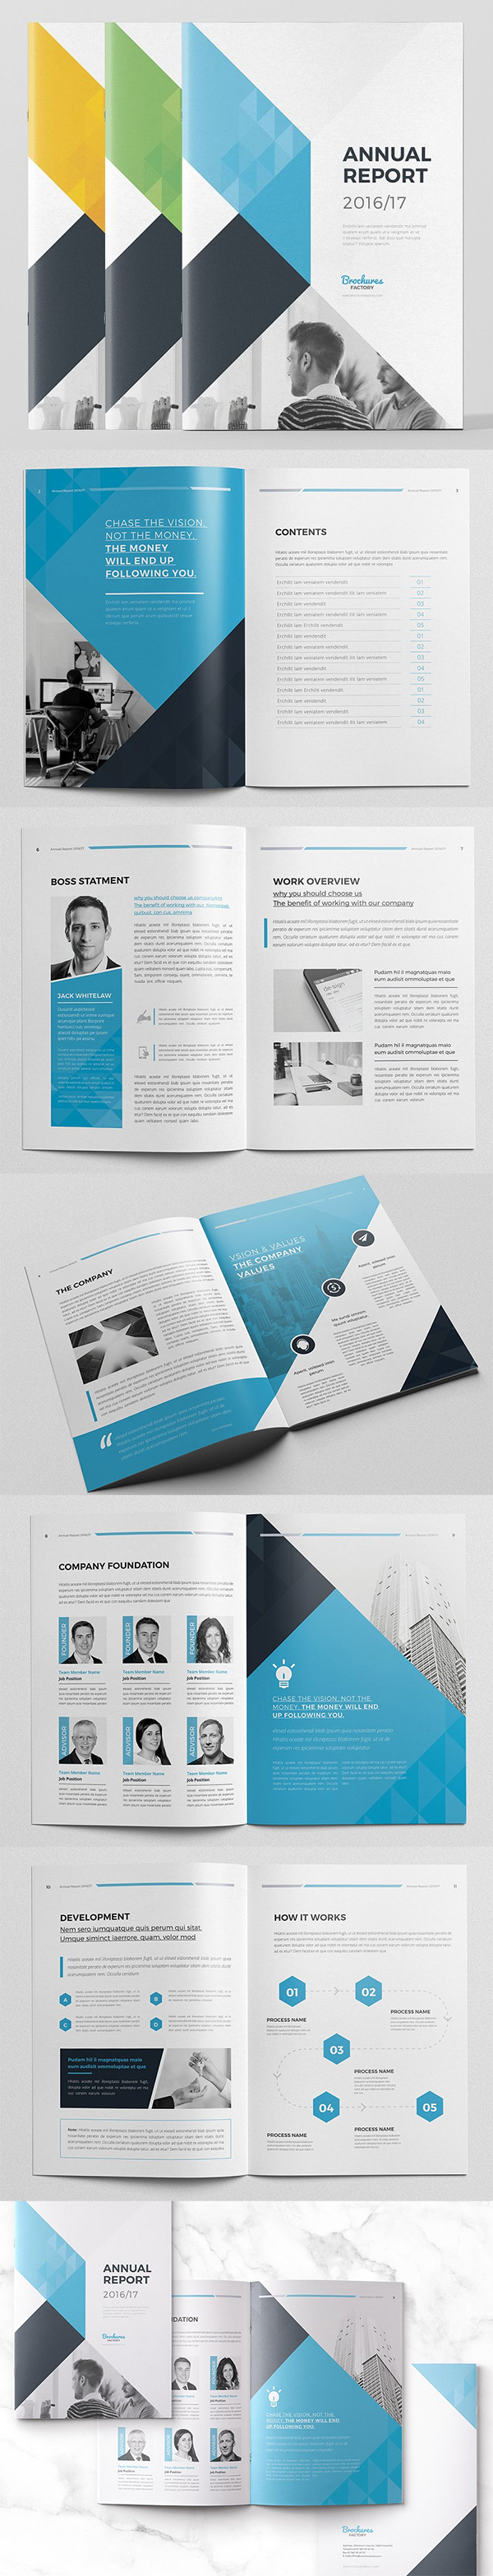 Best Annual Report Template